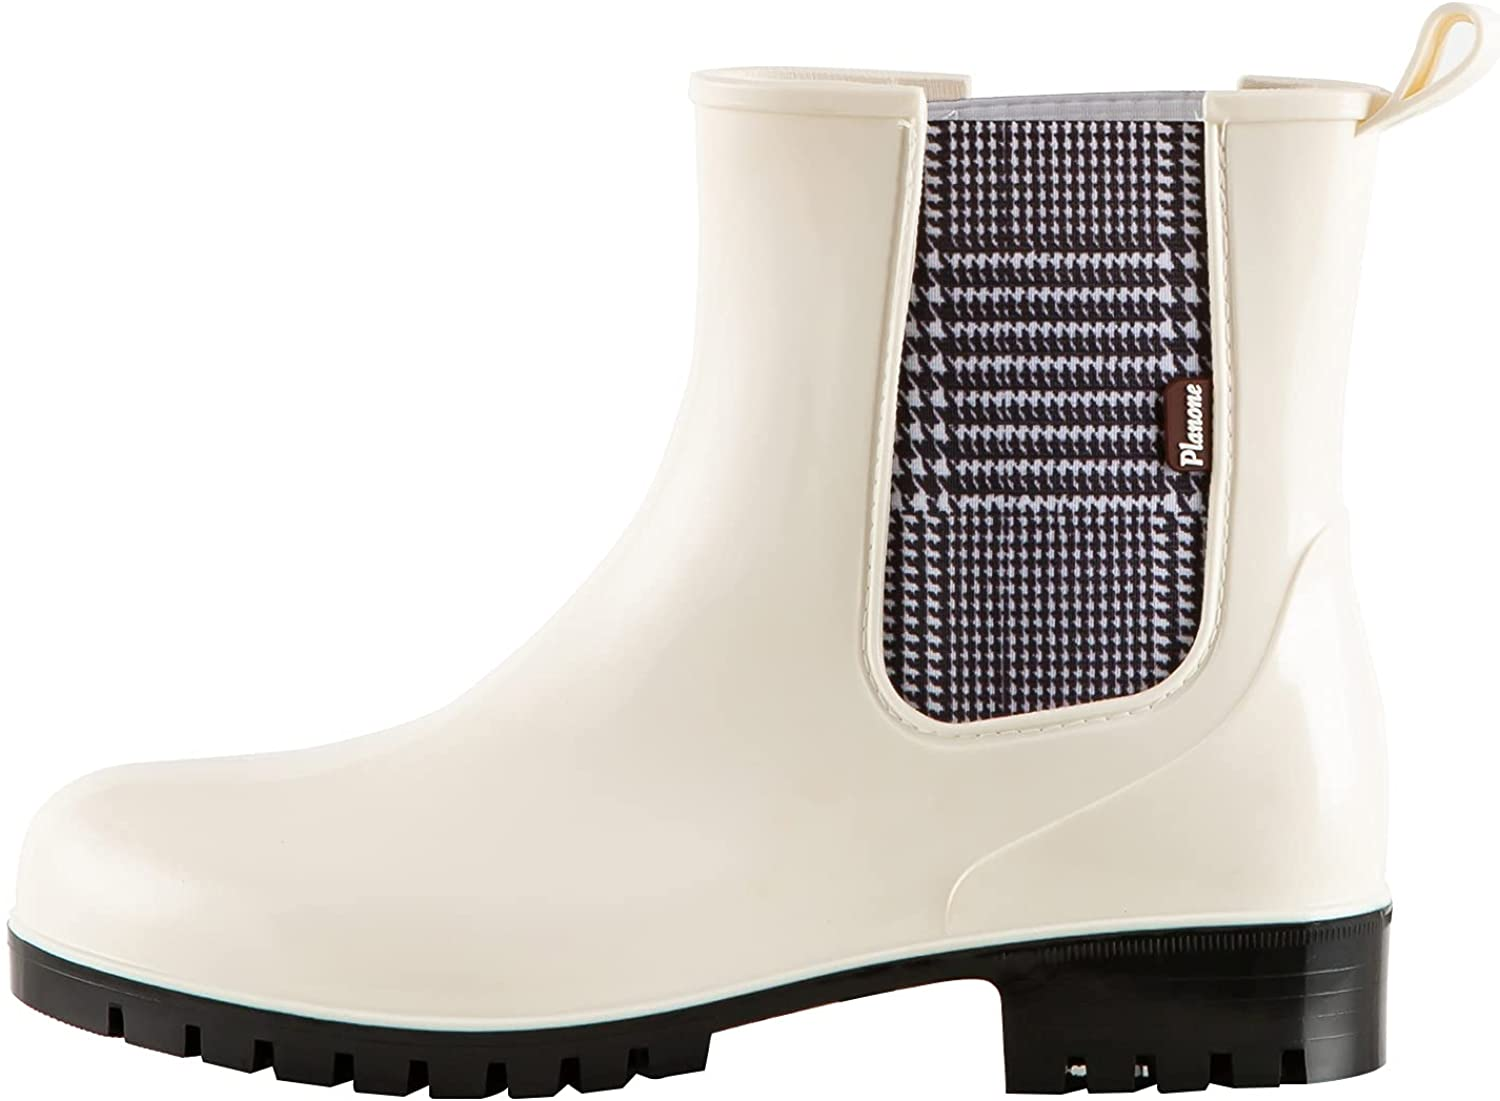 Max 85% OFF planone Short rain Boots Super popular specialty store for Shoesï¼ Garden Waterproof and Women